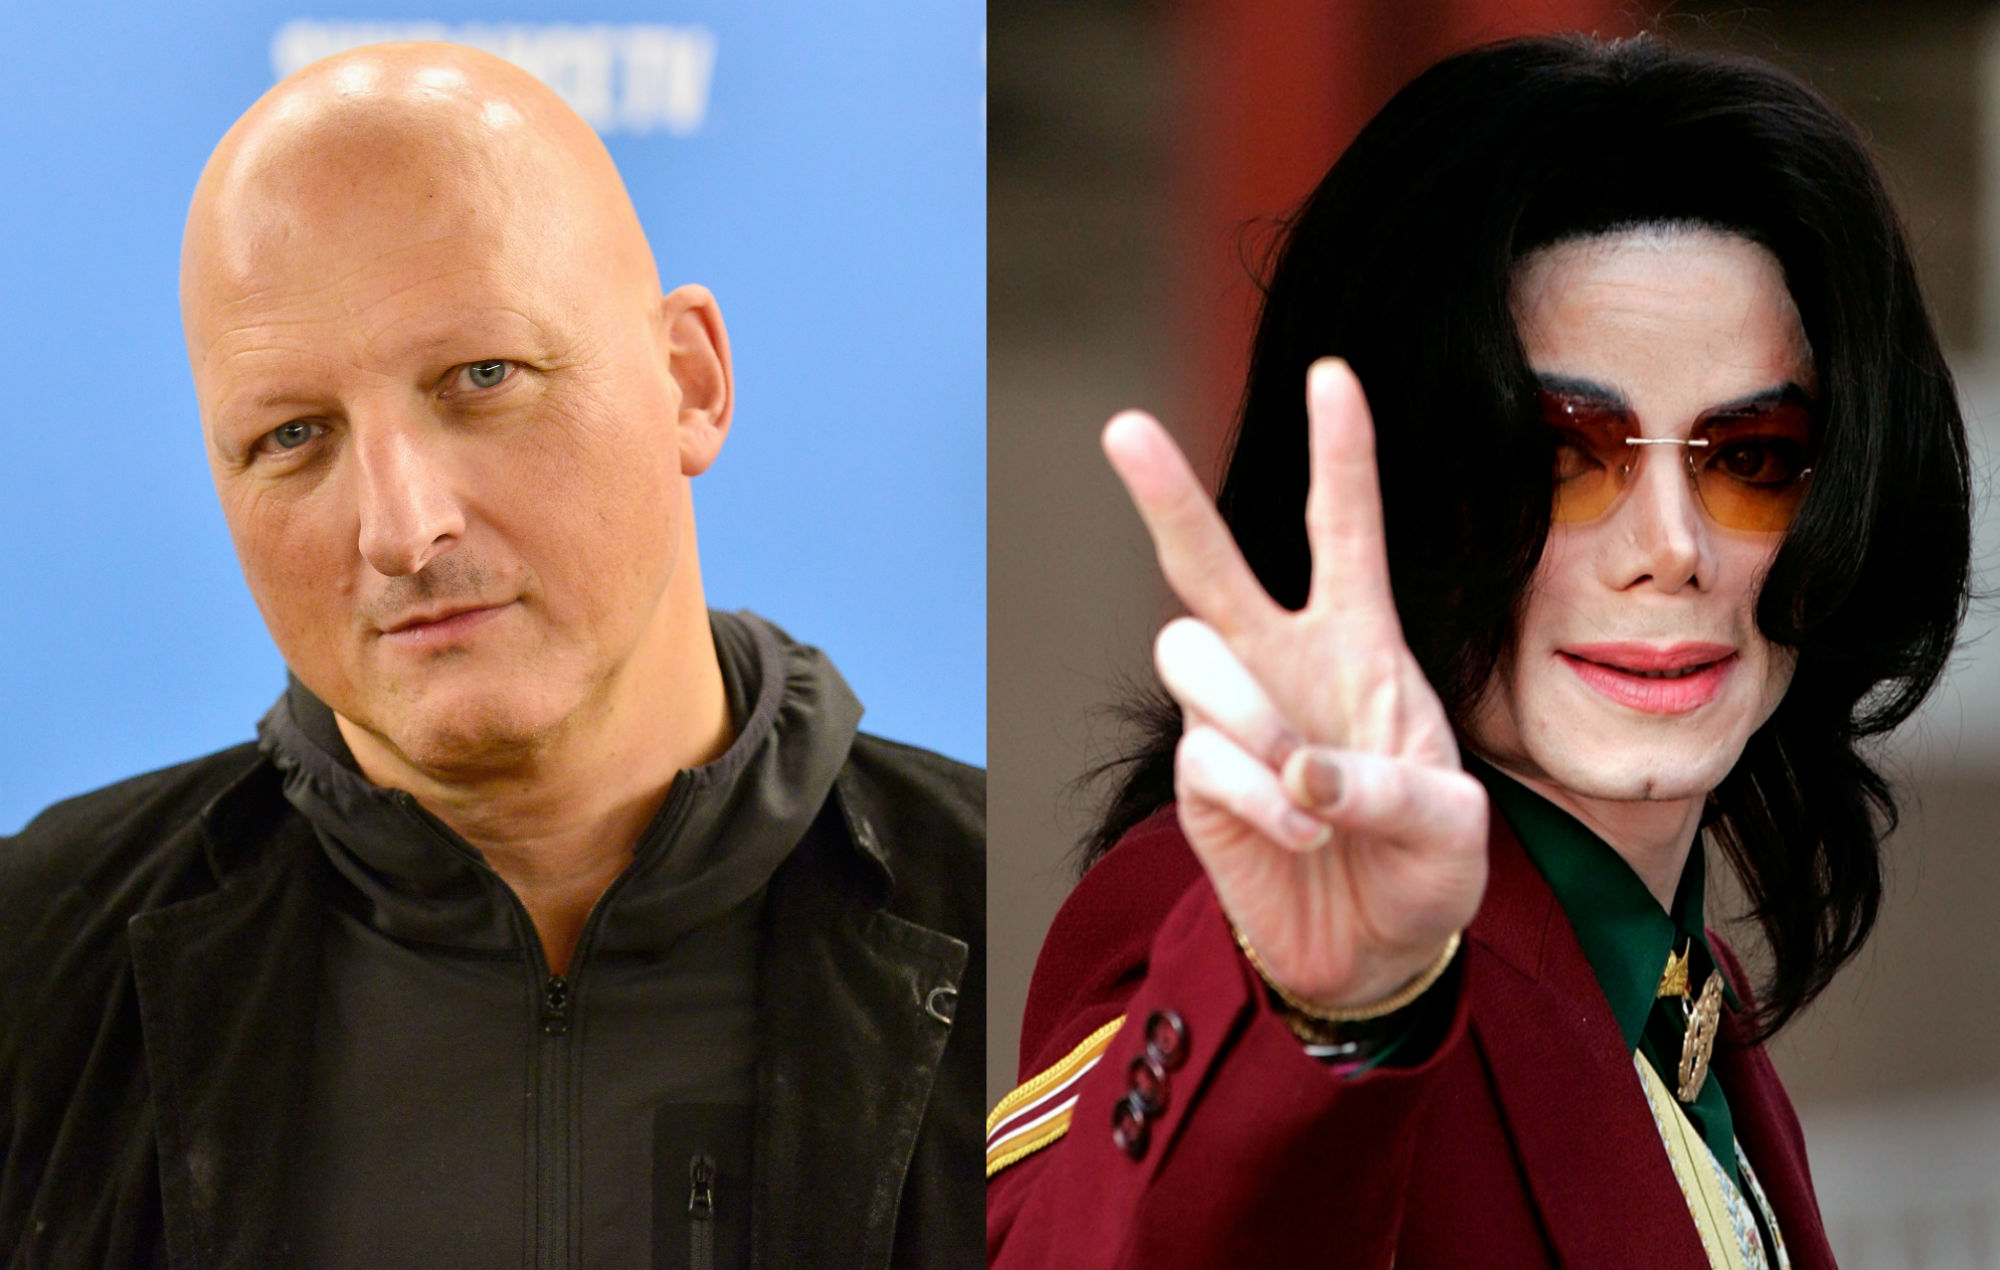 Fan attacks on alleged Michael Jackson victims are 'vile ...